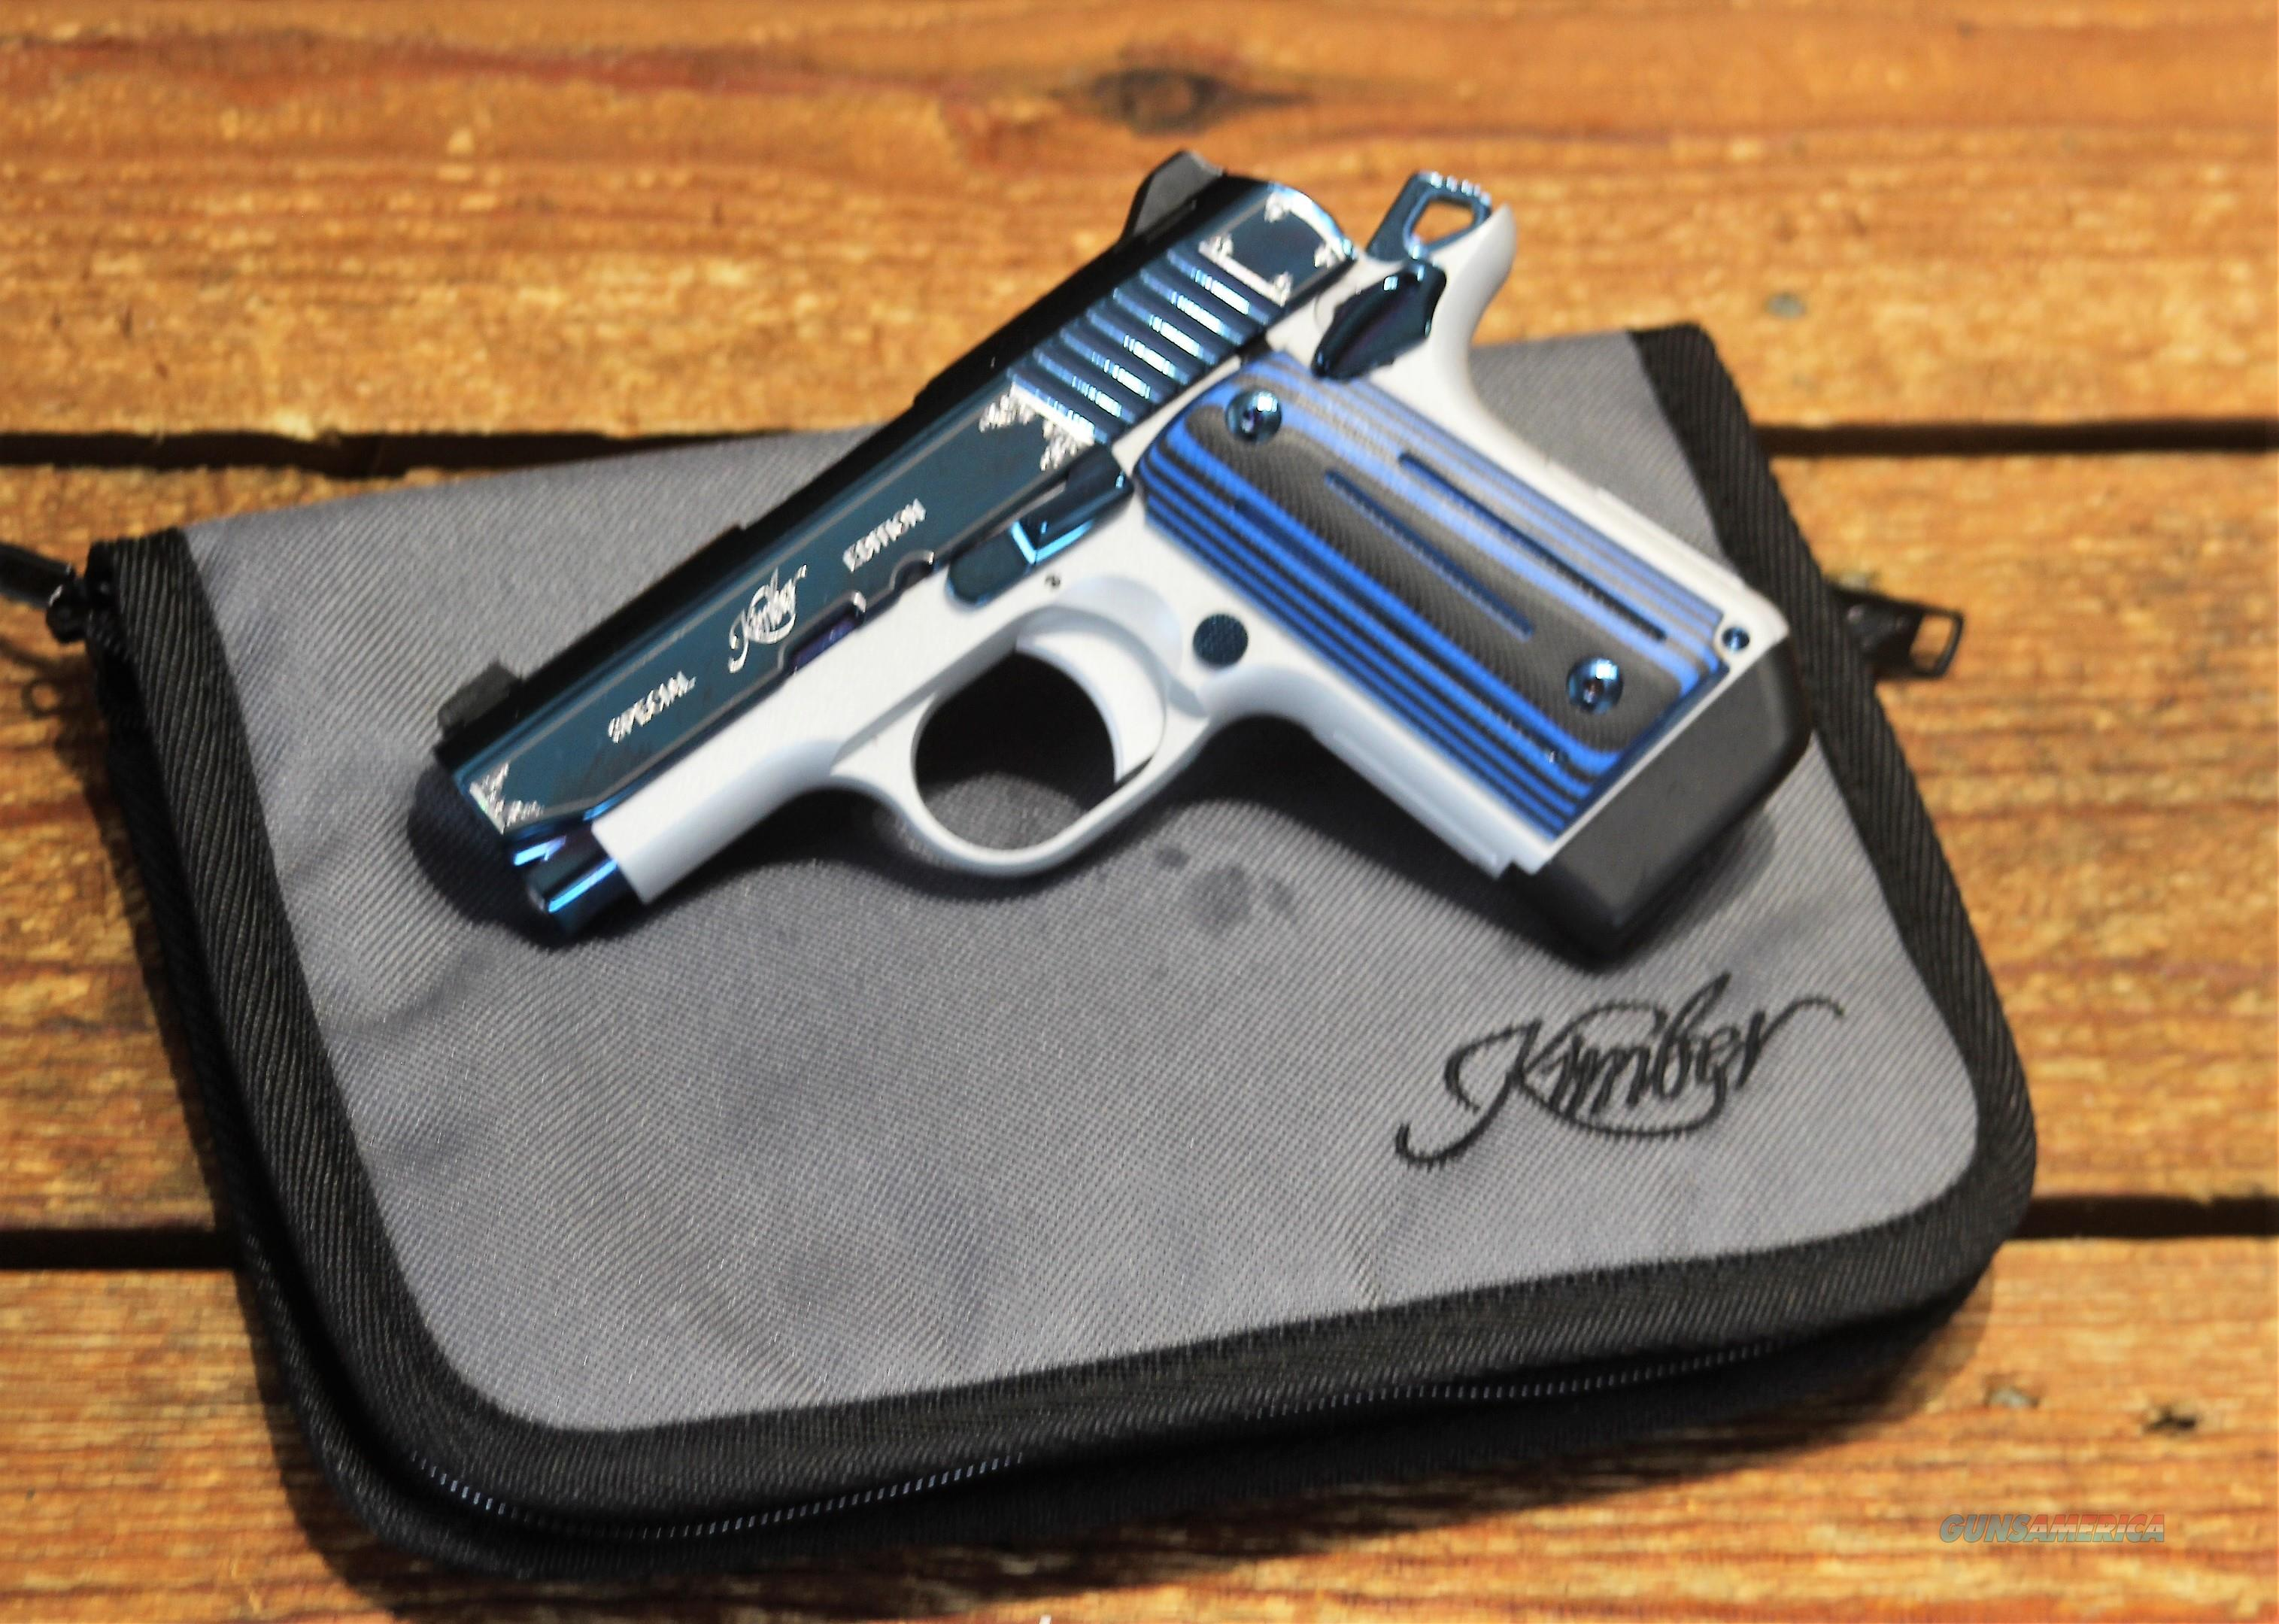 "EASY PAY $89 LAYAWAY  Kimber Micro 9 Sapphire Pistol KIM3300111   PVD finish 9MM, 3.15"", Sapphire/Black Grips, Sapphire Slide, 6 Rd  Guns > Pistols > Kimber of America Pistols > Micro 9"